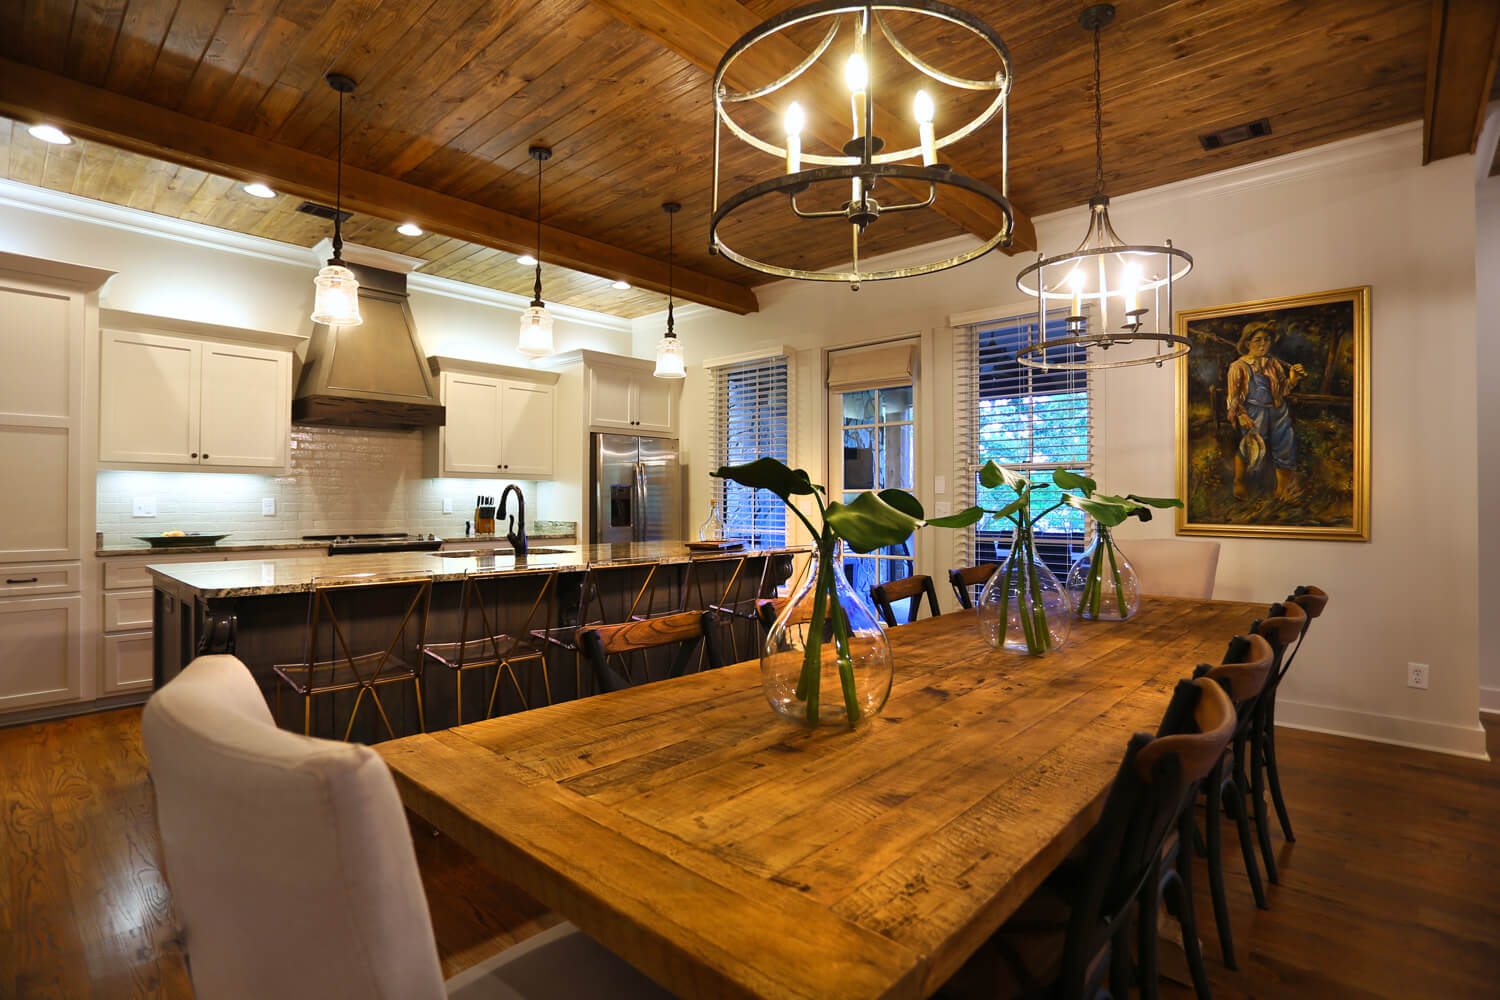 Lake Martin Cabin - Dining and Kitchen - Designed by Foshee Architecture